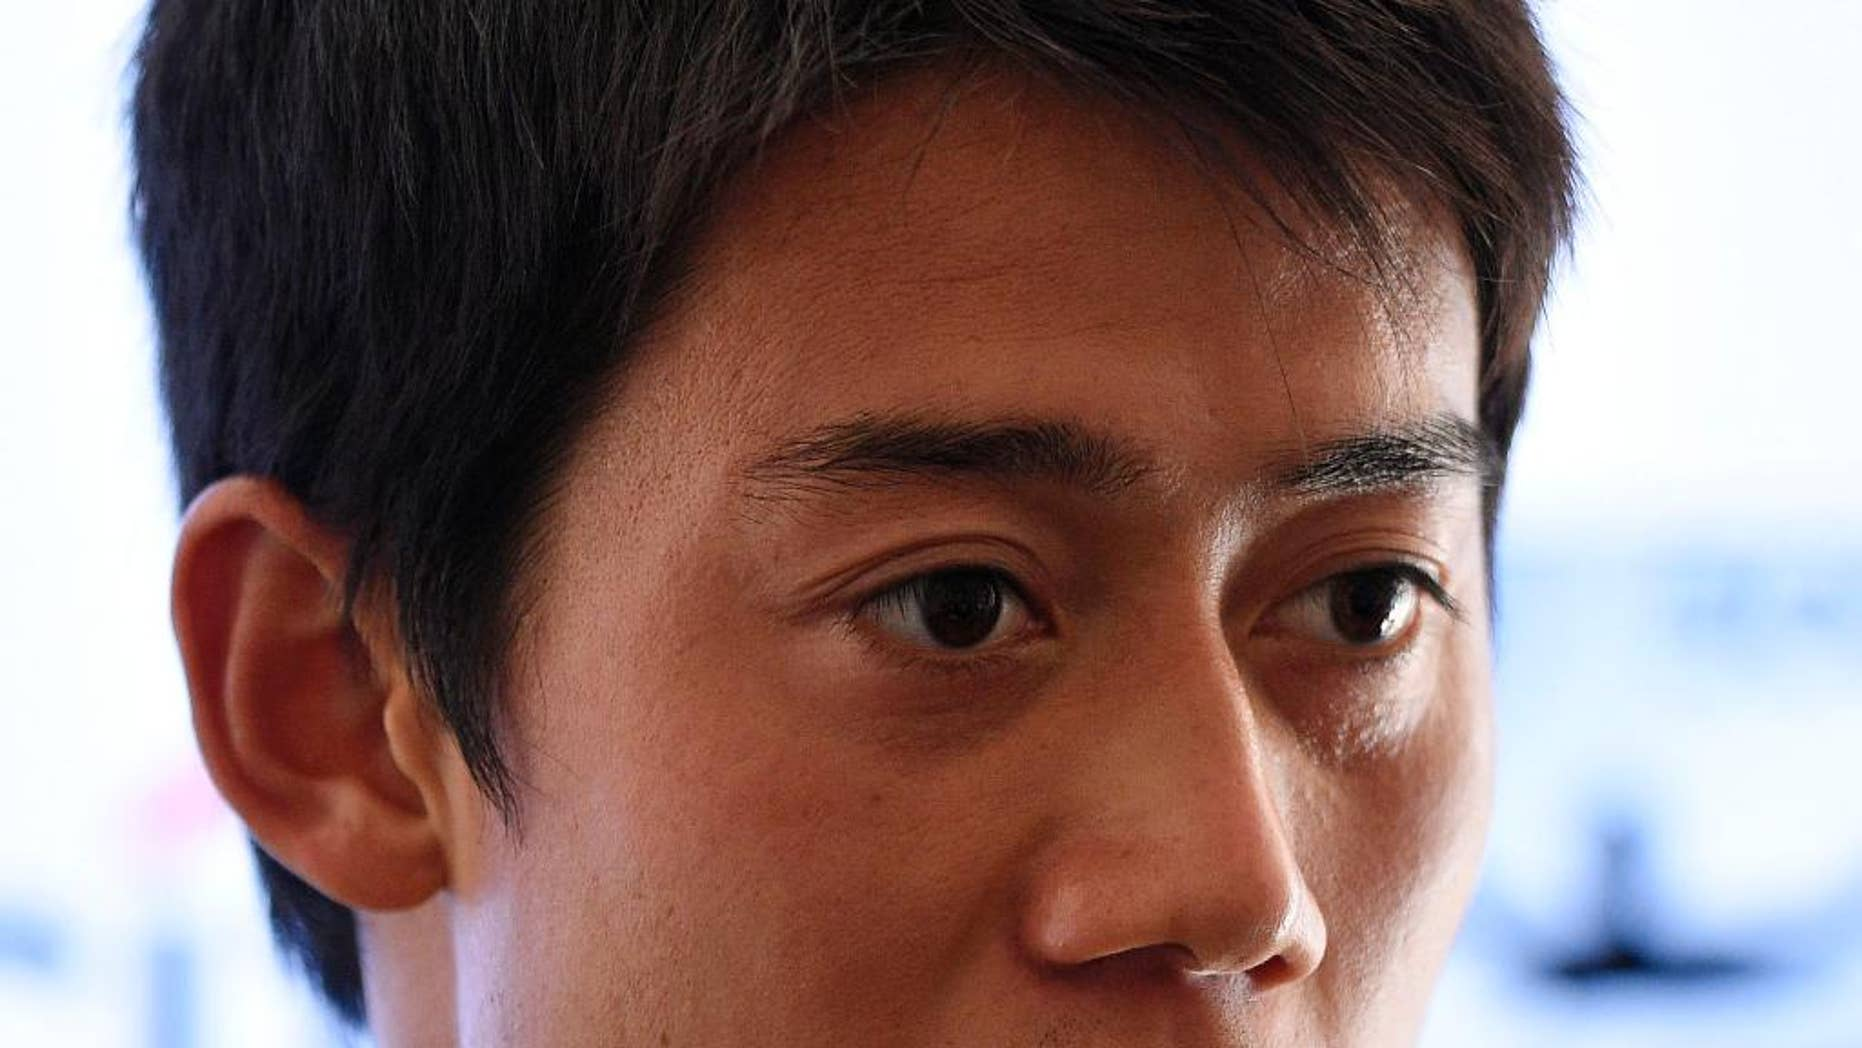 Kei Nishikori, of Japan, speaks at a press conference at the Citi Open tennis tournament, Monday, Aug. 3, 2015, in Washington. (AP Photo/Nick Wass)